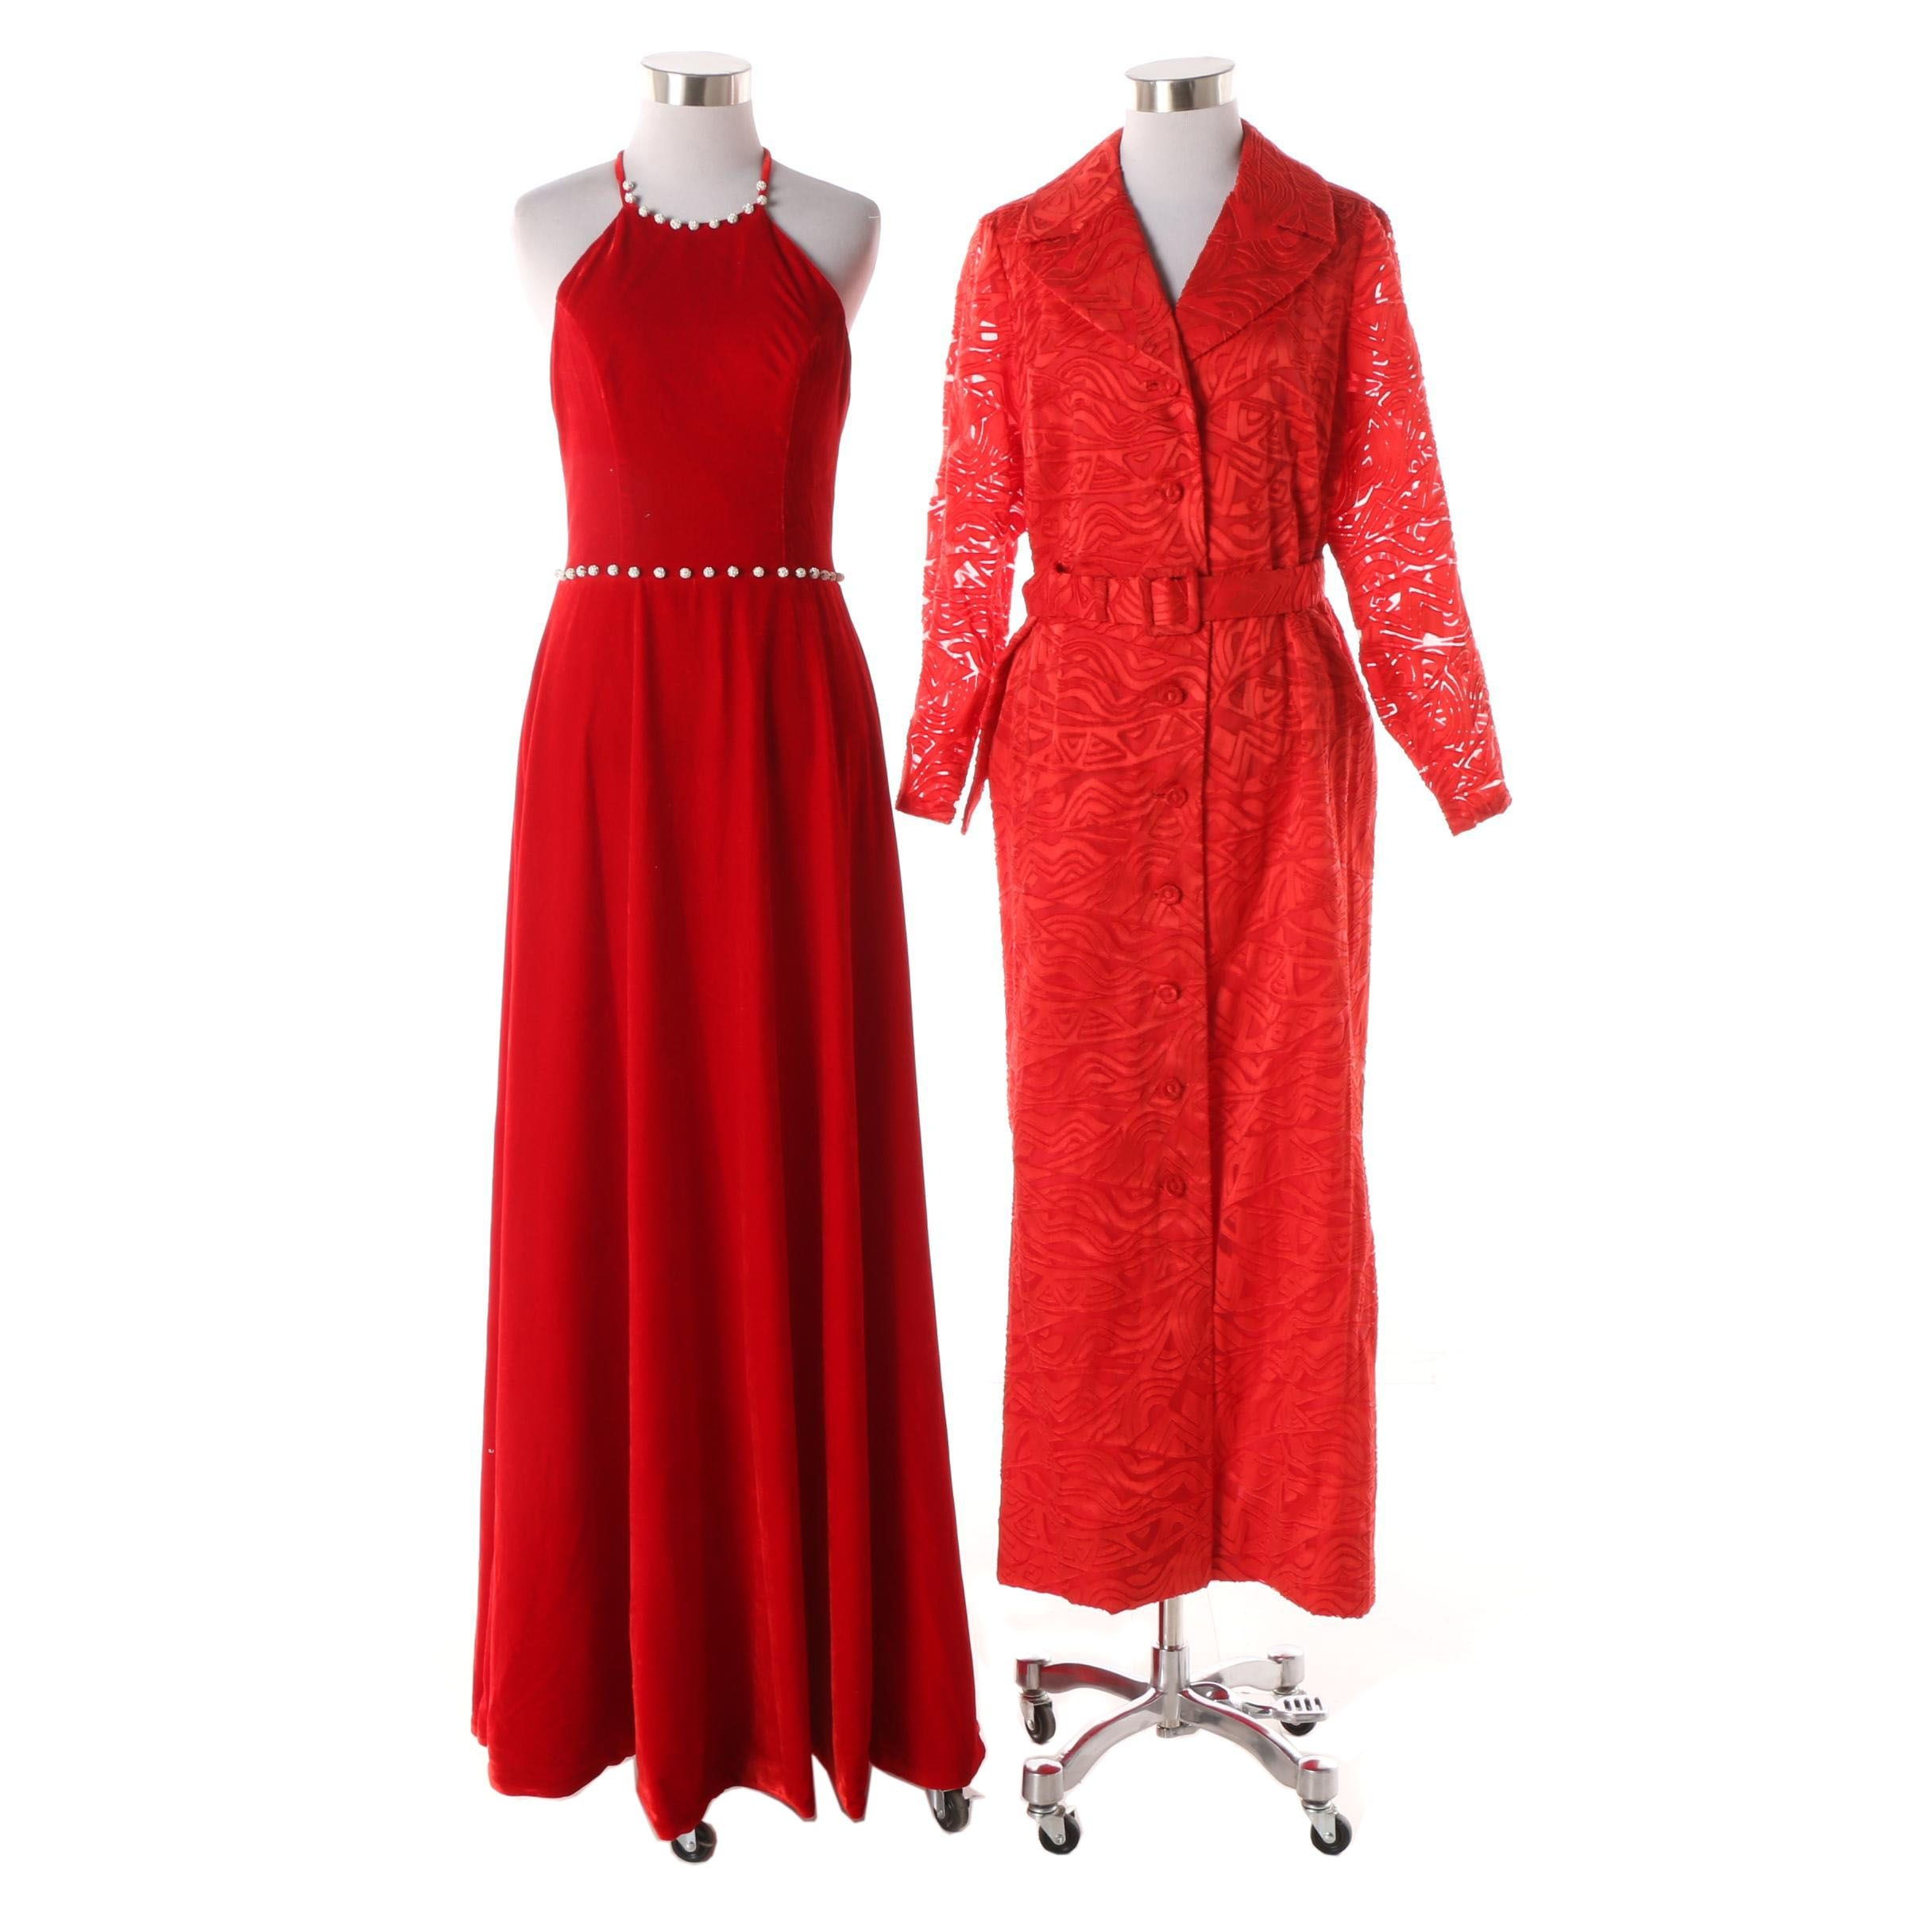 1980s Vintage Embellished Red Velvet Evening Gown with Doreen Loh Trench Dress